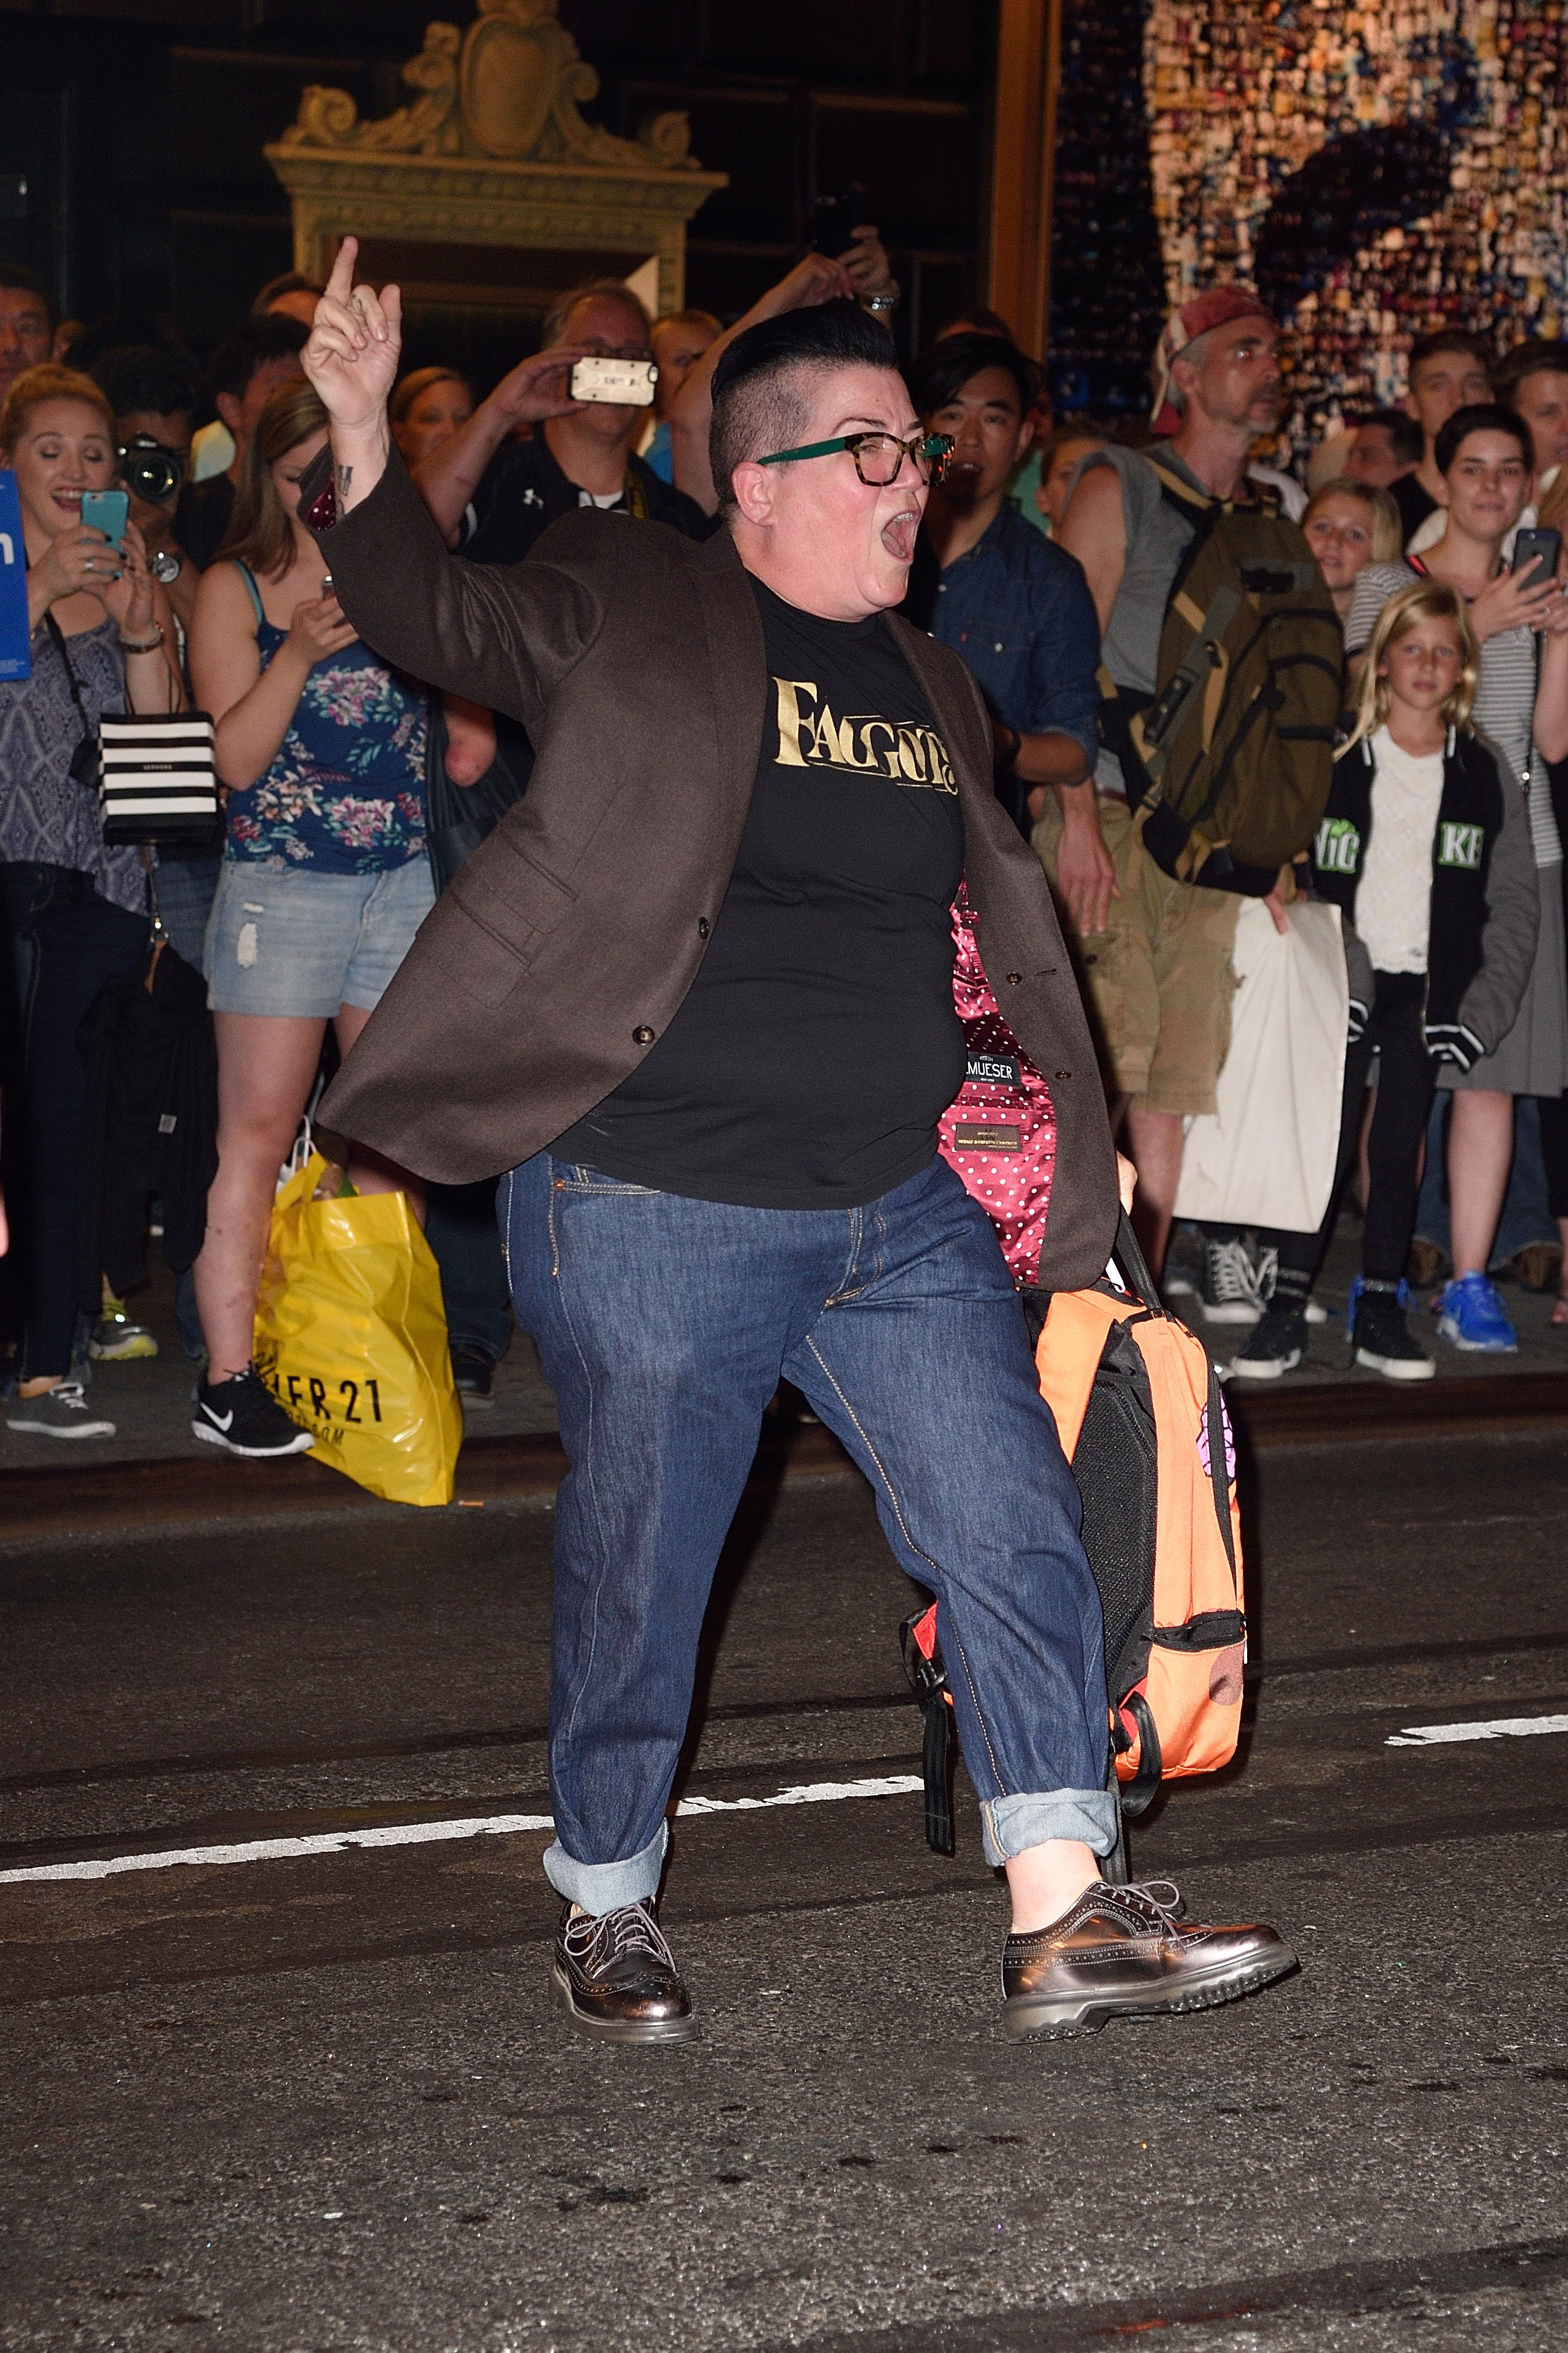 DeLaria leads an expletive chant outside a Hillary Clinton event (Photo credit: Splash News)